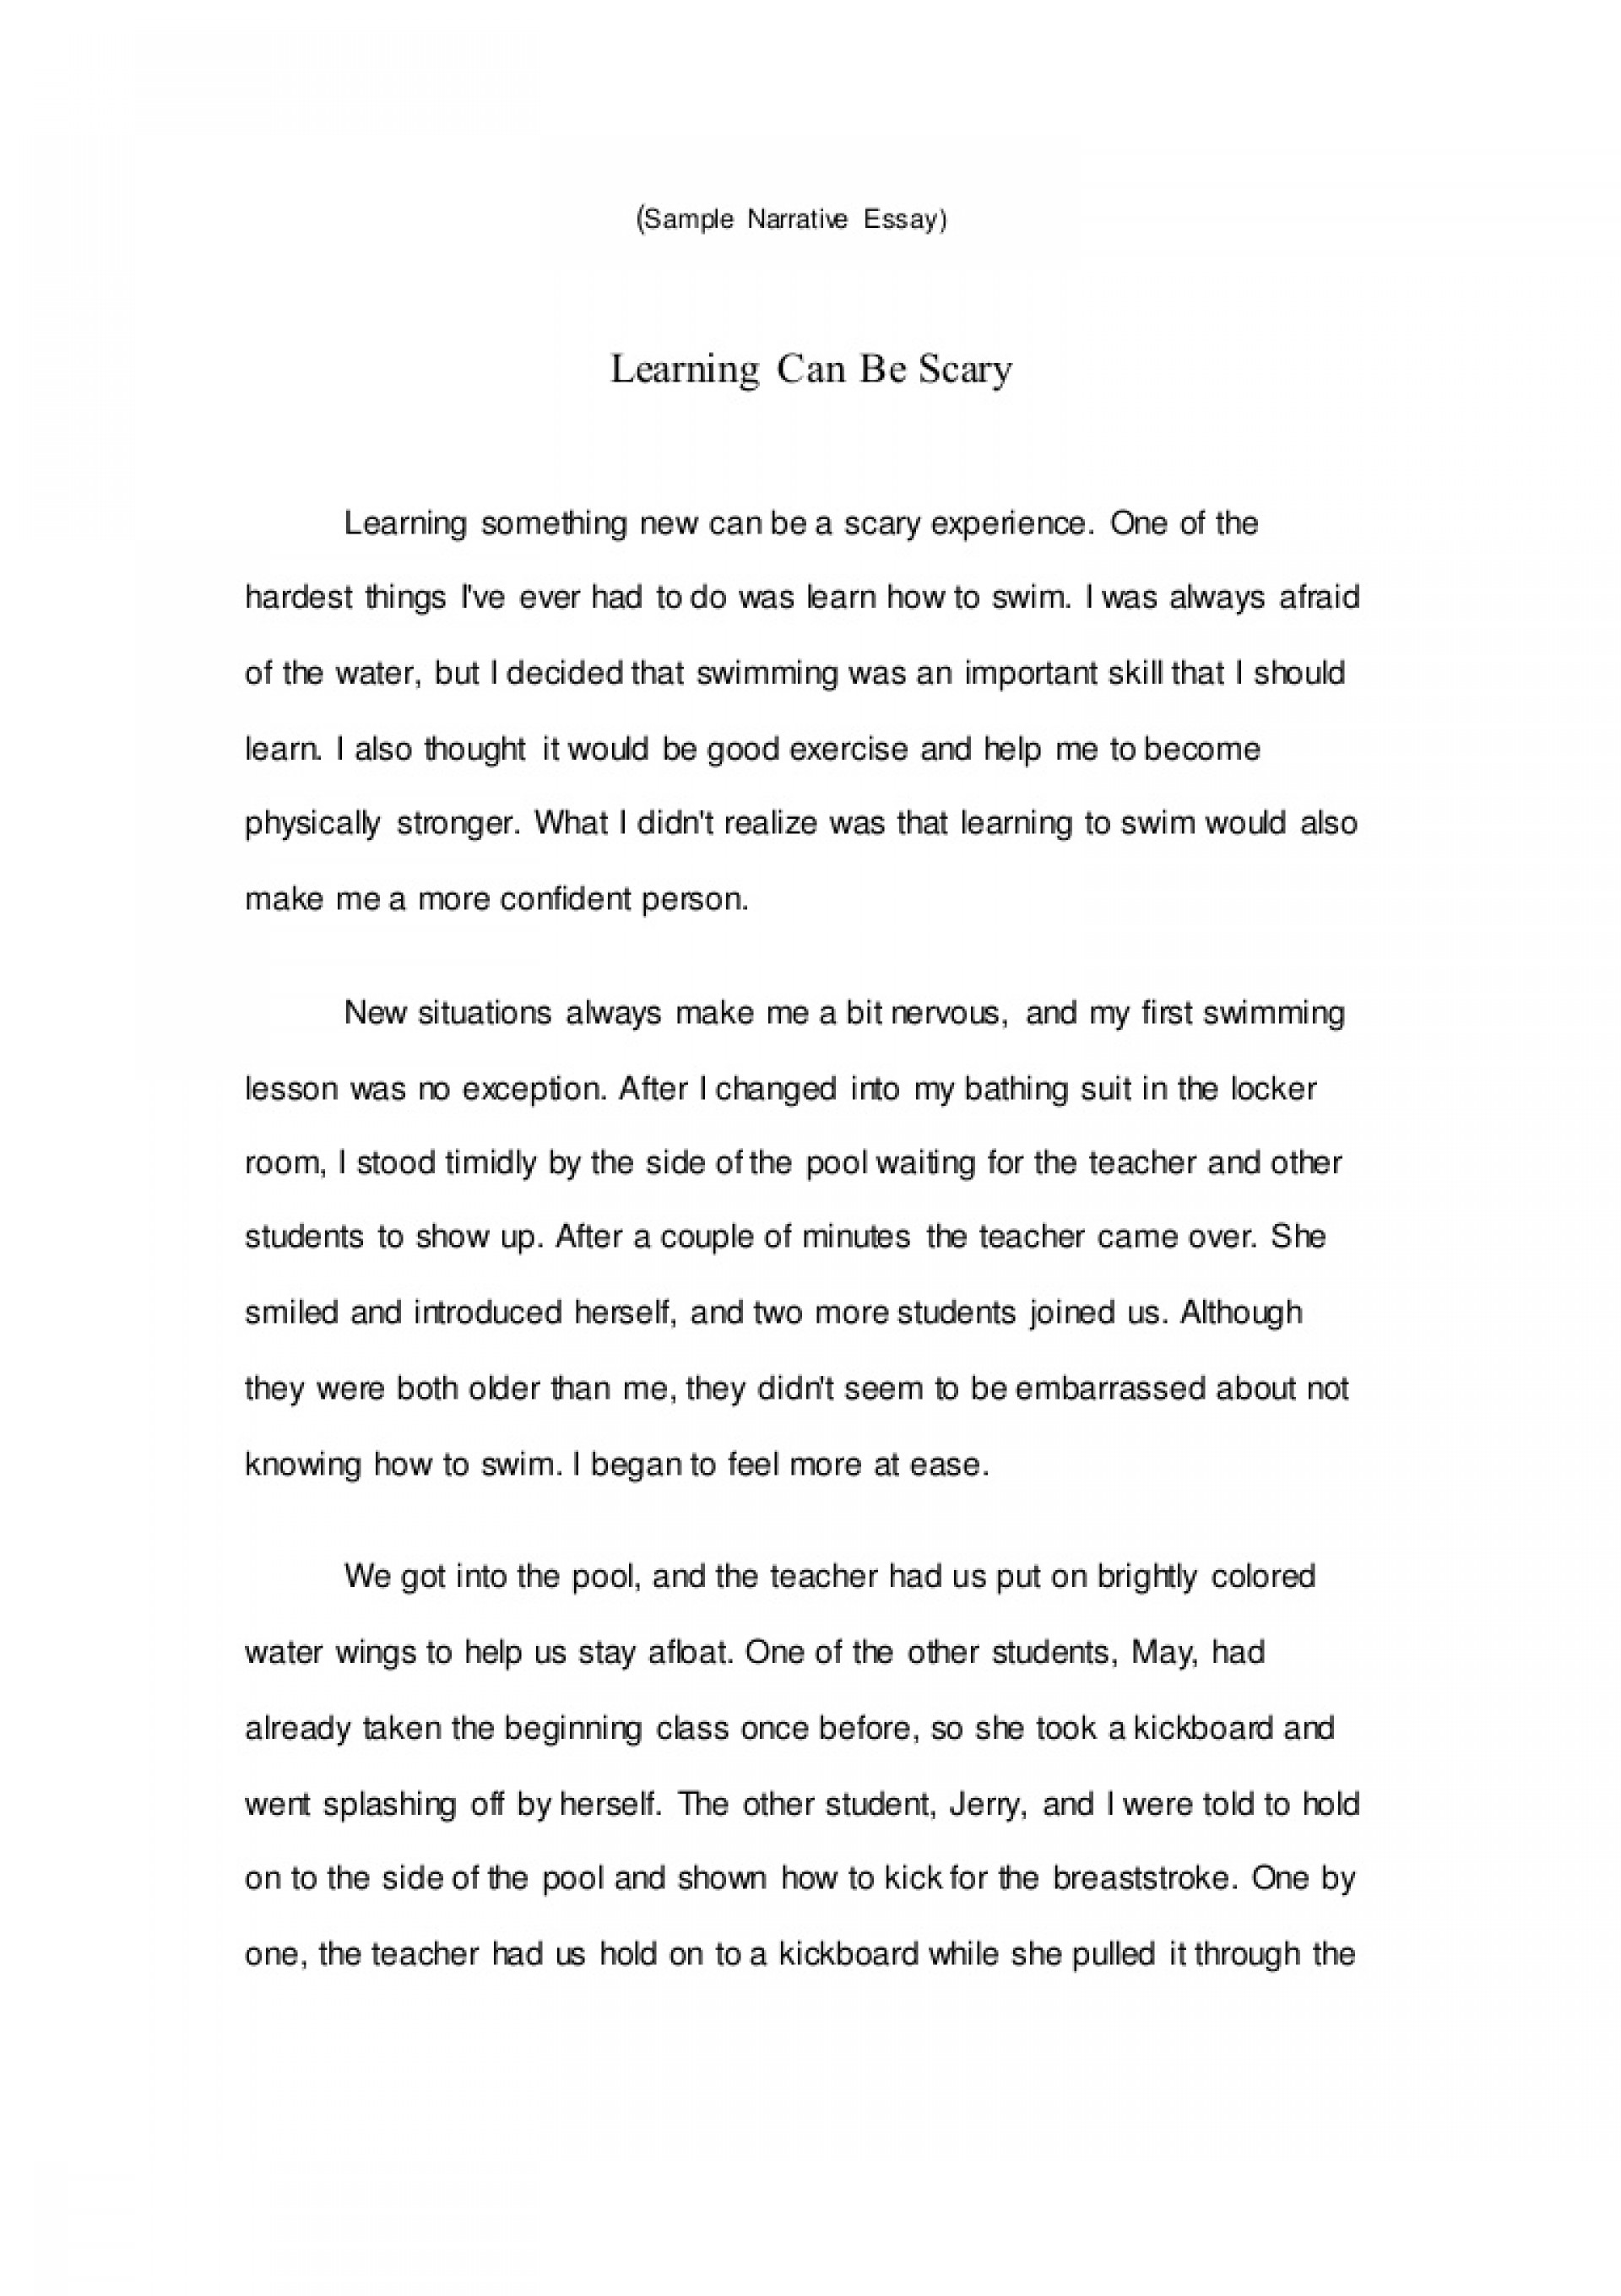 017 Essay Example Samplenarrativeessay Lva1 App6891 Thumbnail Writing Amazing A Narrative About Being Judged Quizlet Powerpoint 1920